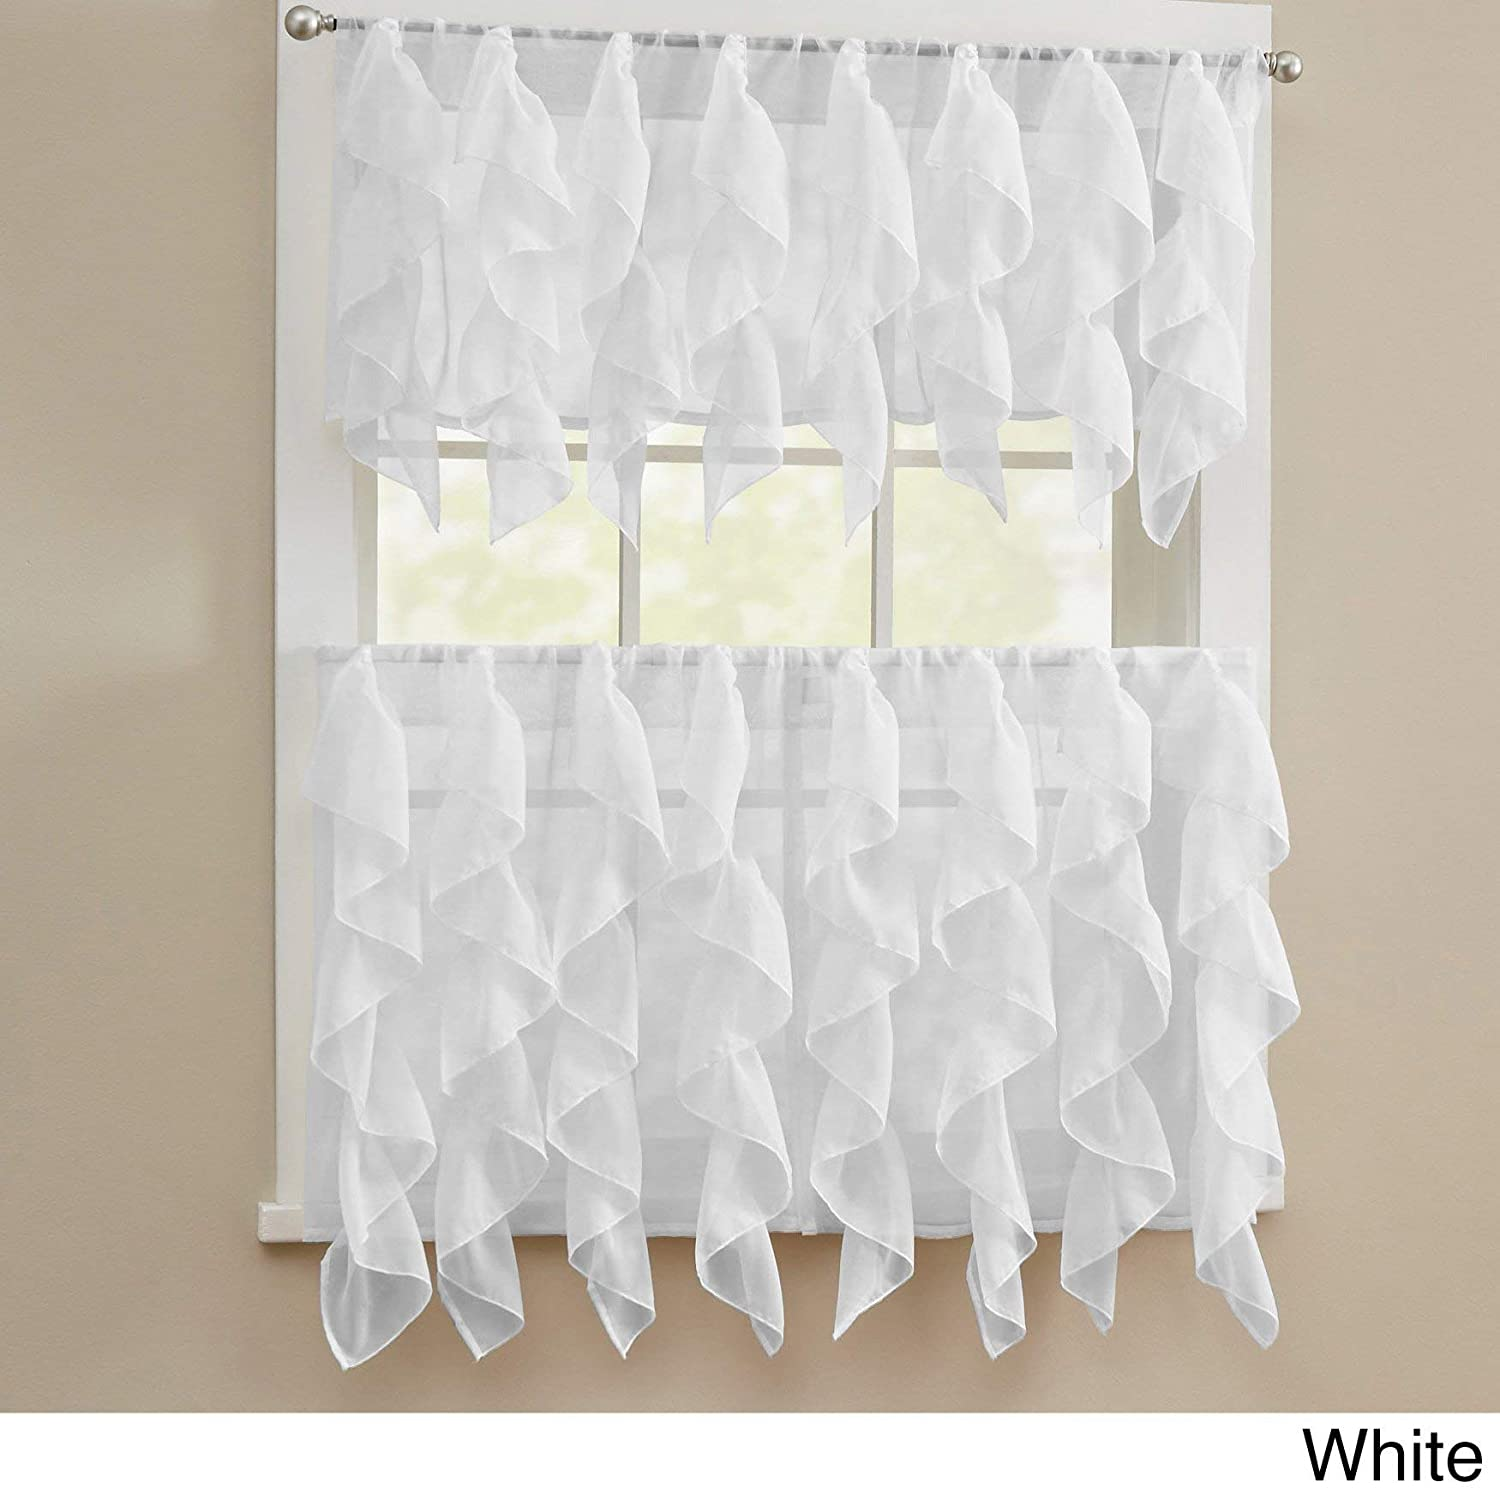 bed bath n more Chic Sheer Voile Vertical Ruffled Tier Window Curtain Valance or Tier White 56 x 24